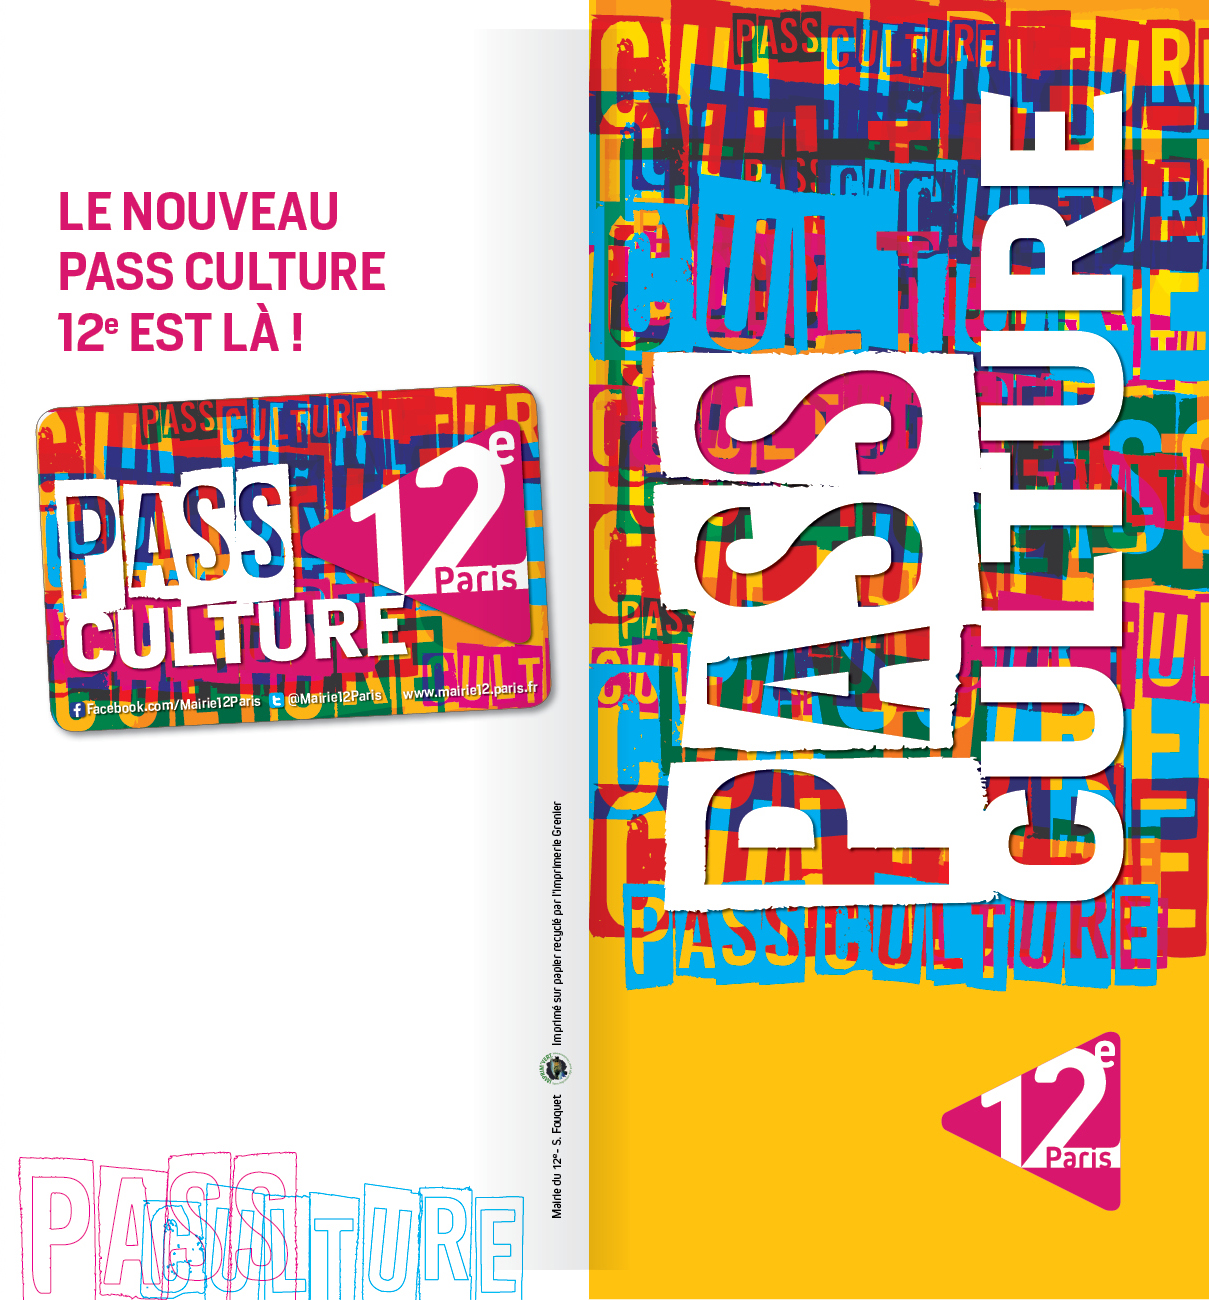 Paris 12e - Affiches - PASS Culture